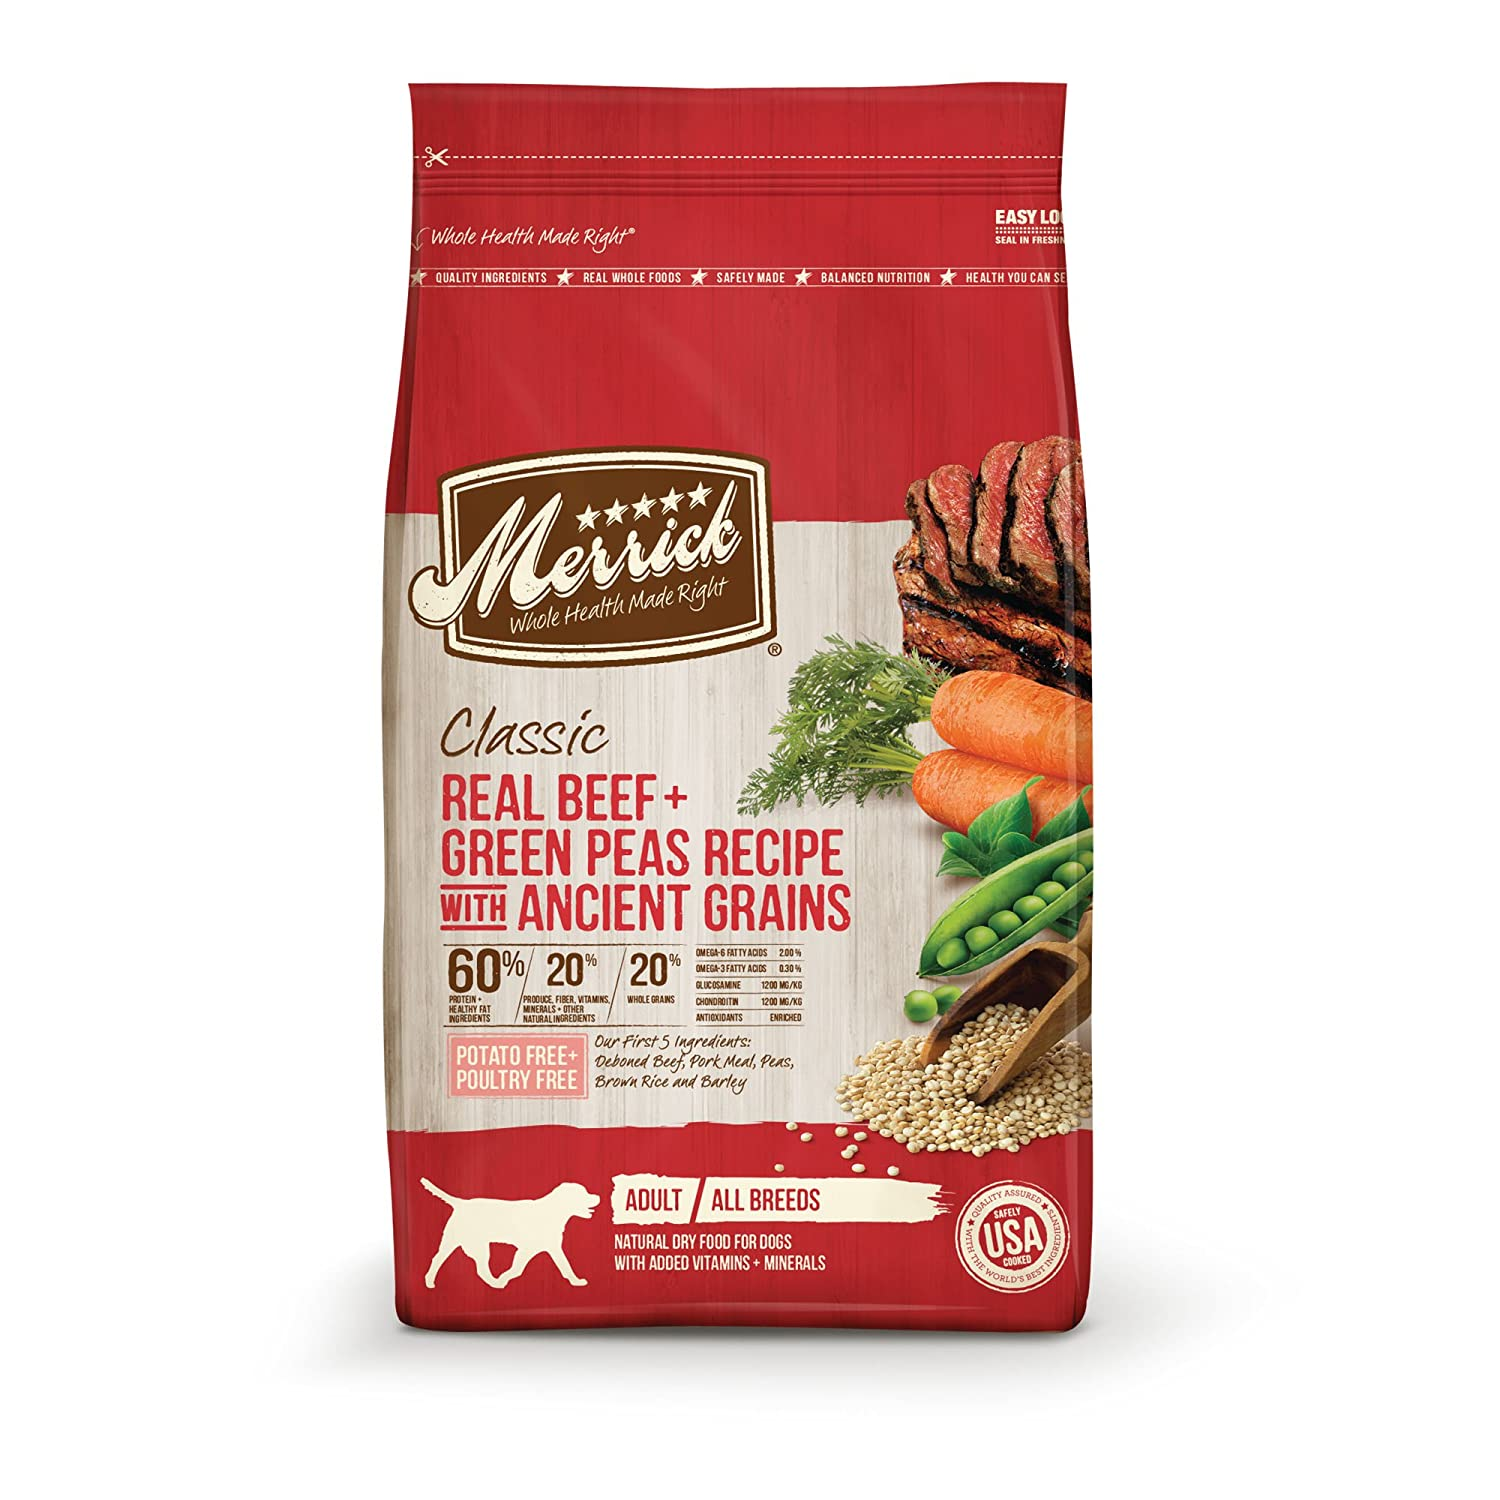 Merrick Dry Dog Food with Healthy Grains; Added Vitamins & Minerals for All Breeds